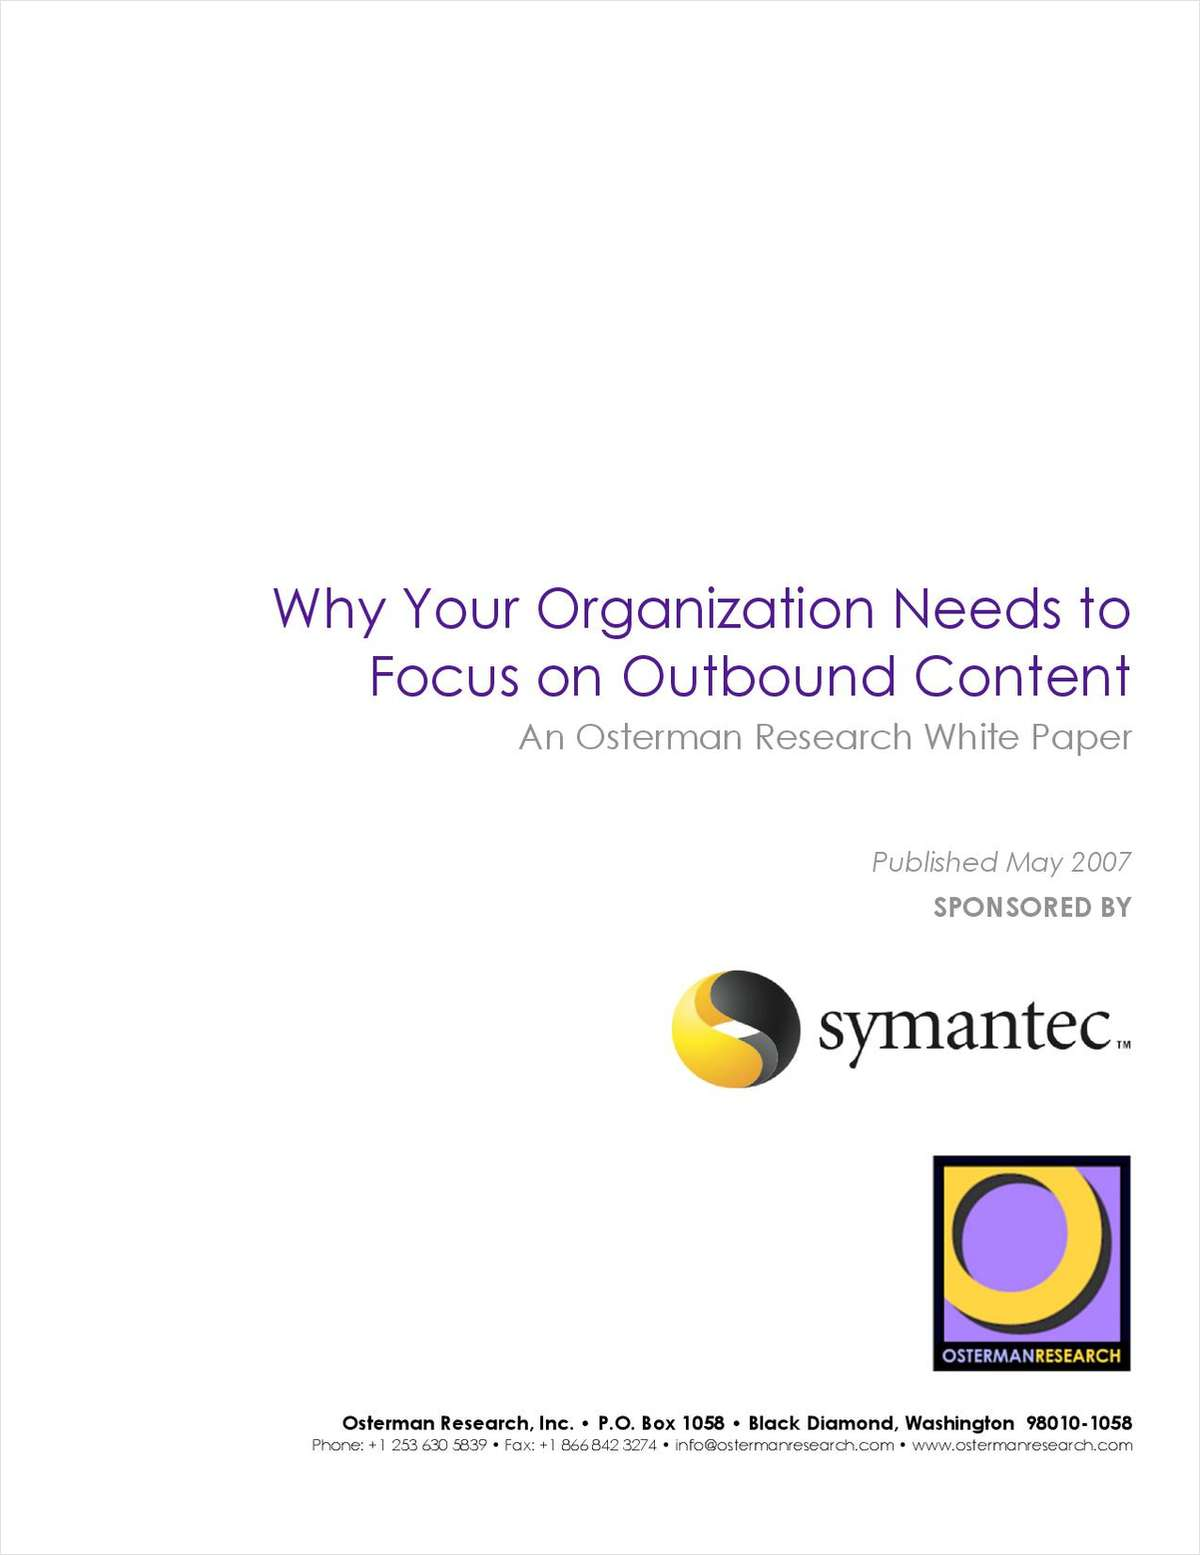 Why Your Organization Needs to Focus on Outbound Content